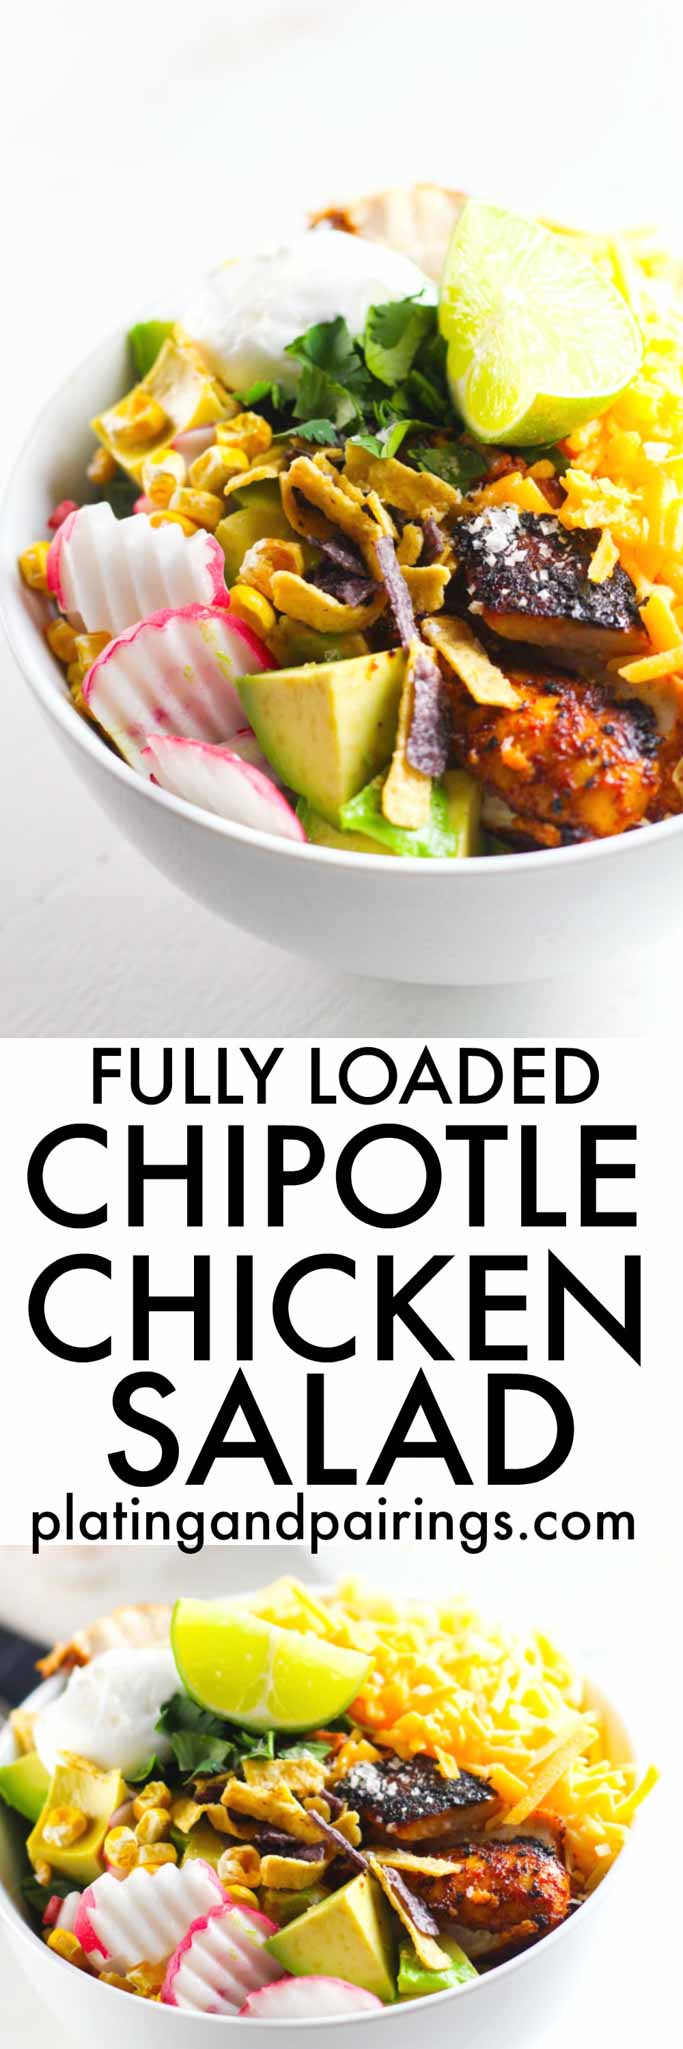 This Chipotle Chicken Salad features five superfoods and is fully loaded with spicy chicken, ditalini pasta, cheese, avocado, lime, cilantro, sour cream, and a zesty chipotle dressing | platingsandpairings.com